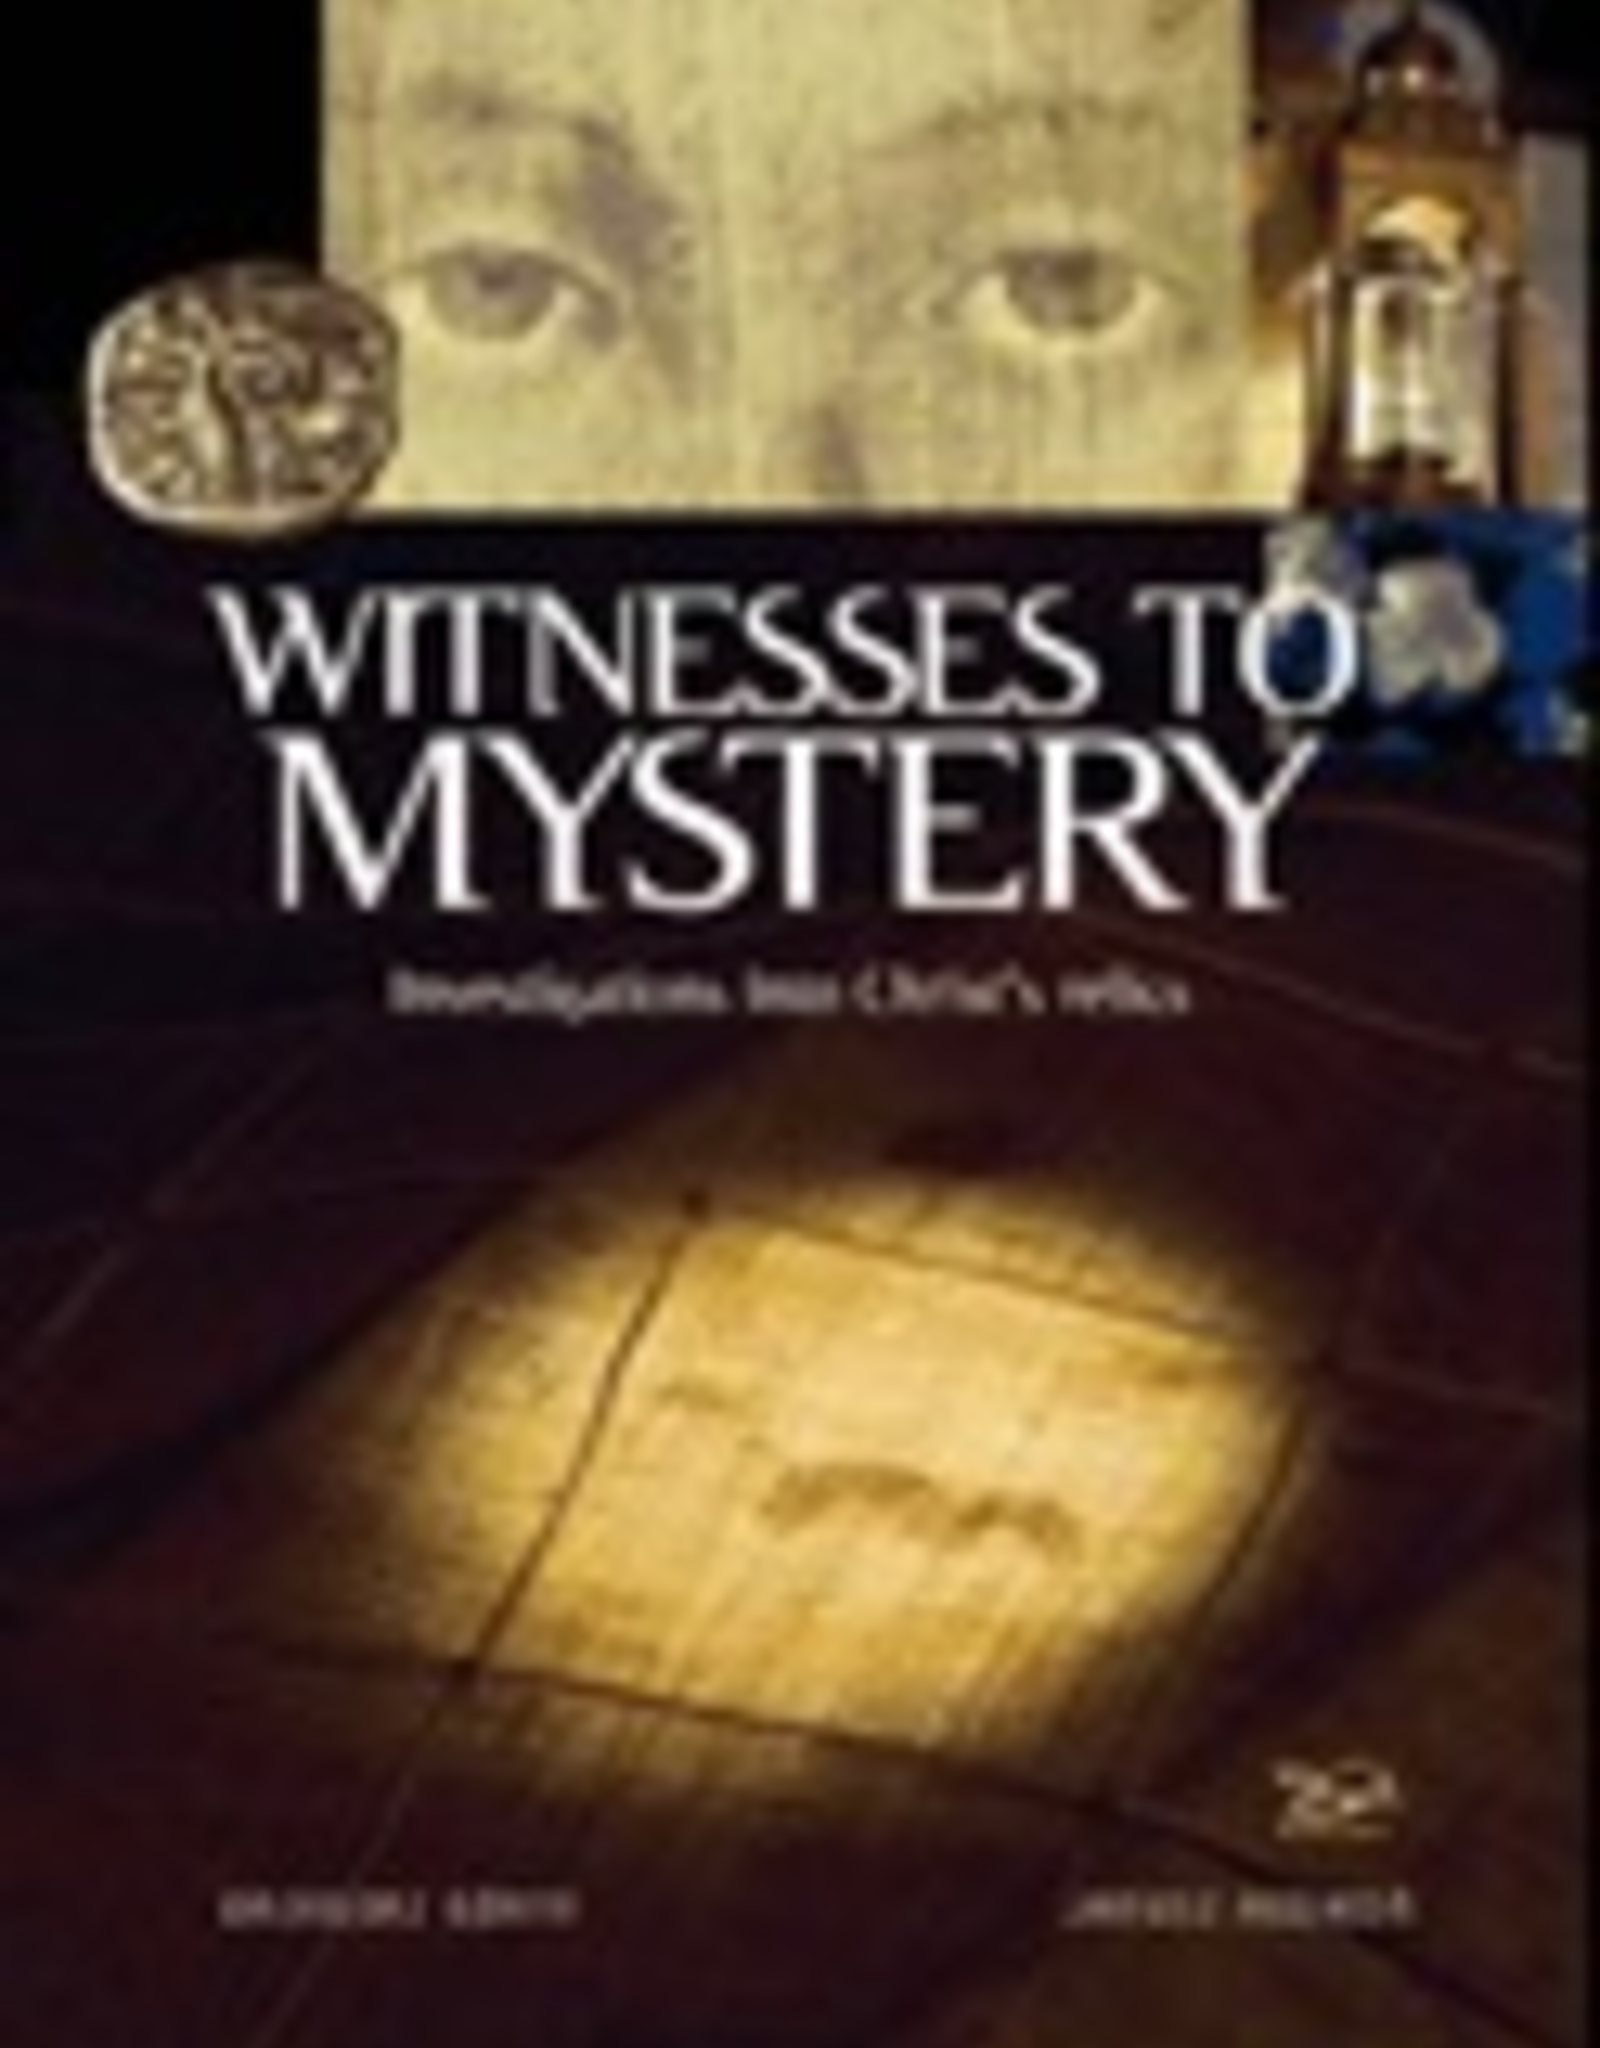 Ignatius Press Witnesses to Mystery:  Investigations into Christ's Relics, by Grzegorz Gorny (hardcover)